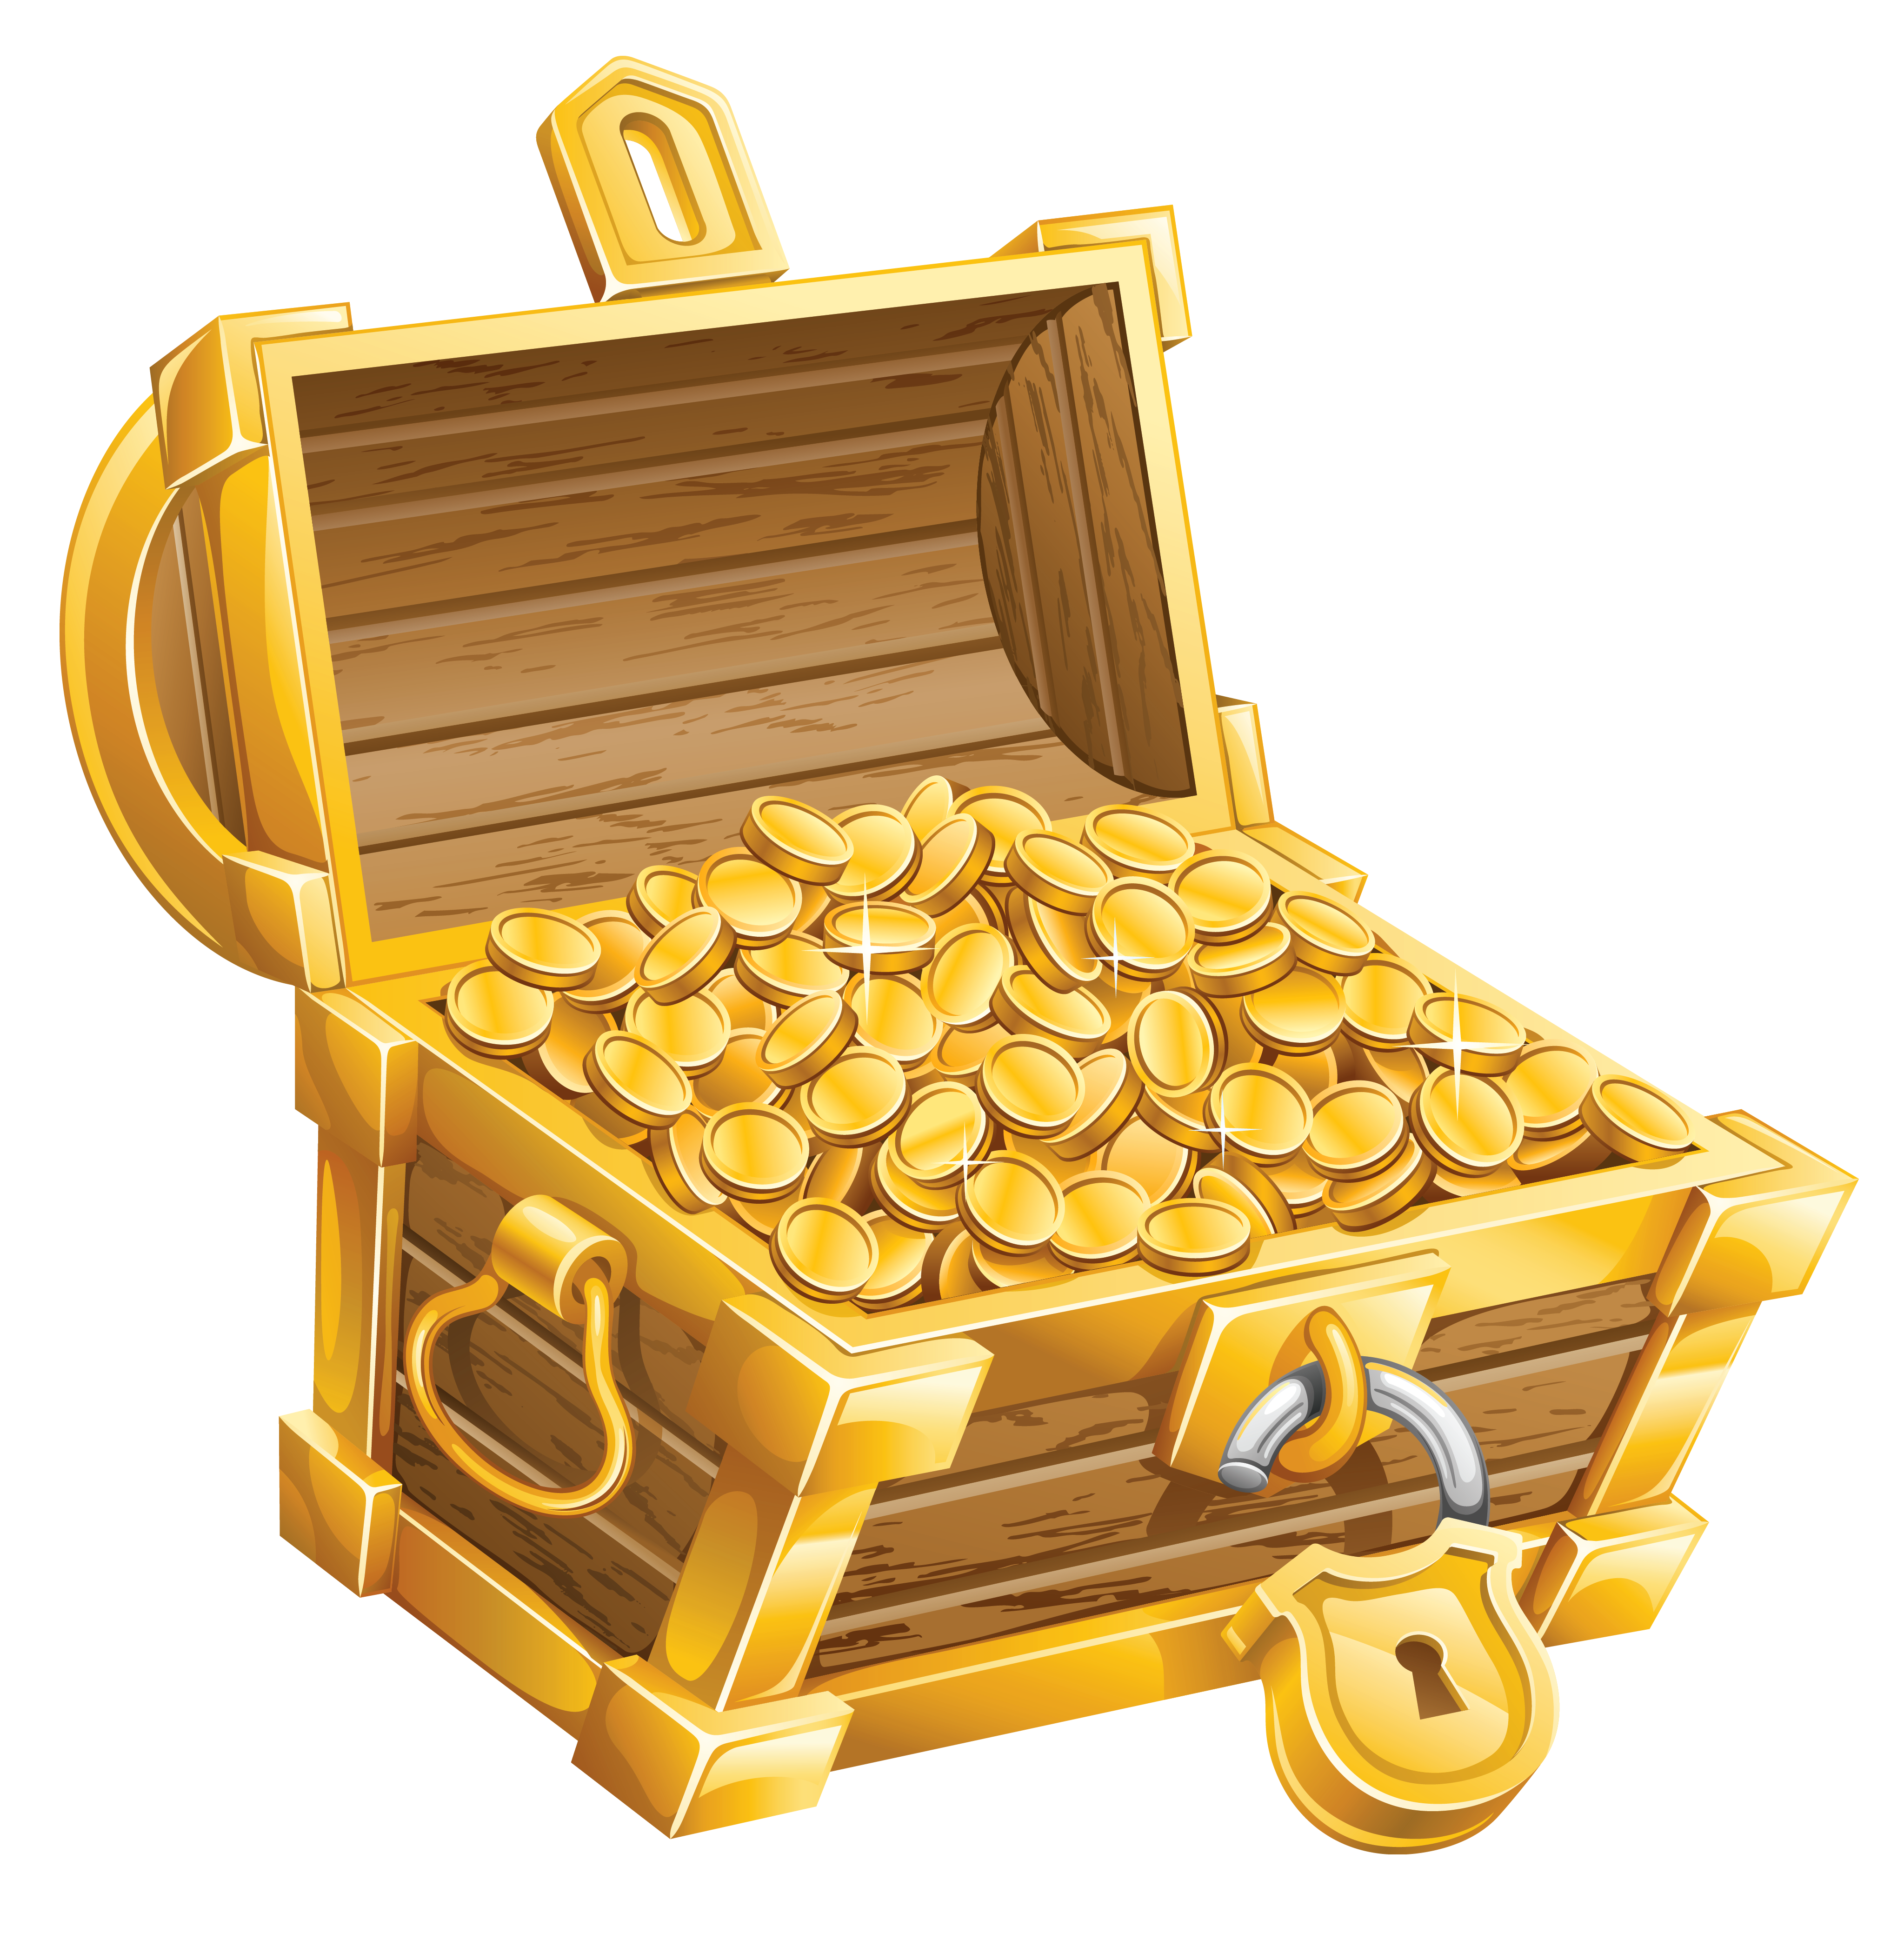 Treasure clipart treasure key. Chest free yoobee moodboards